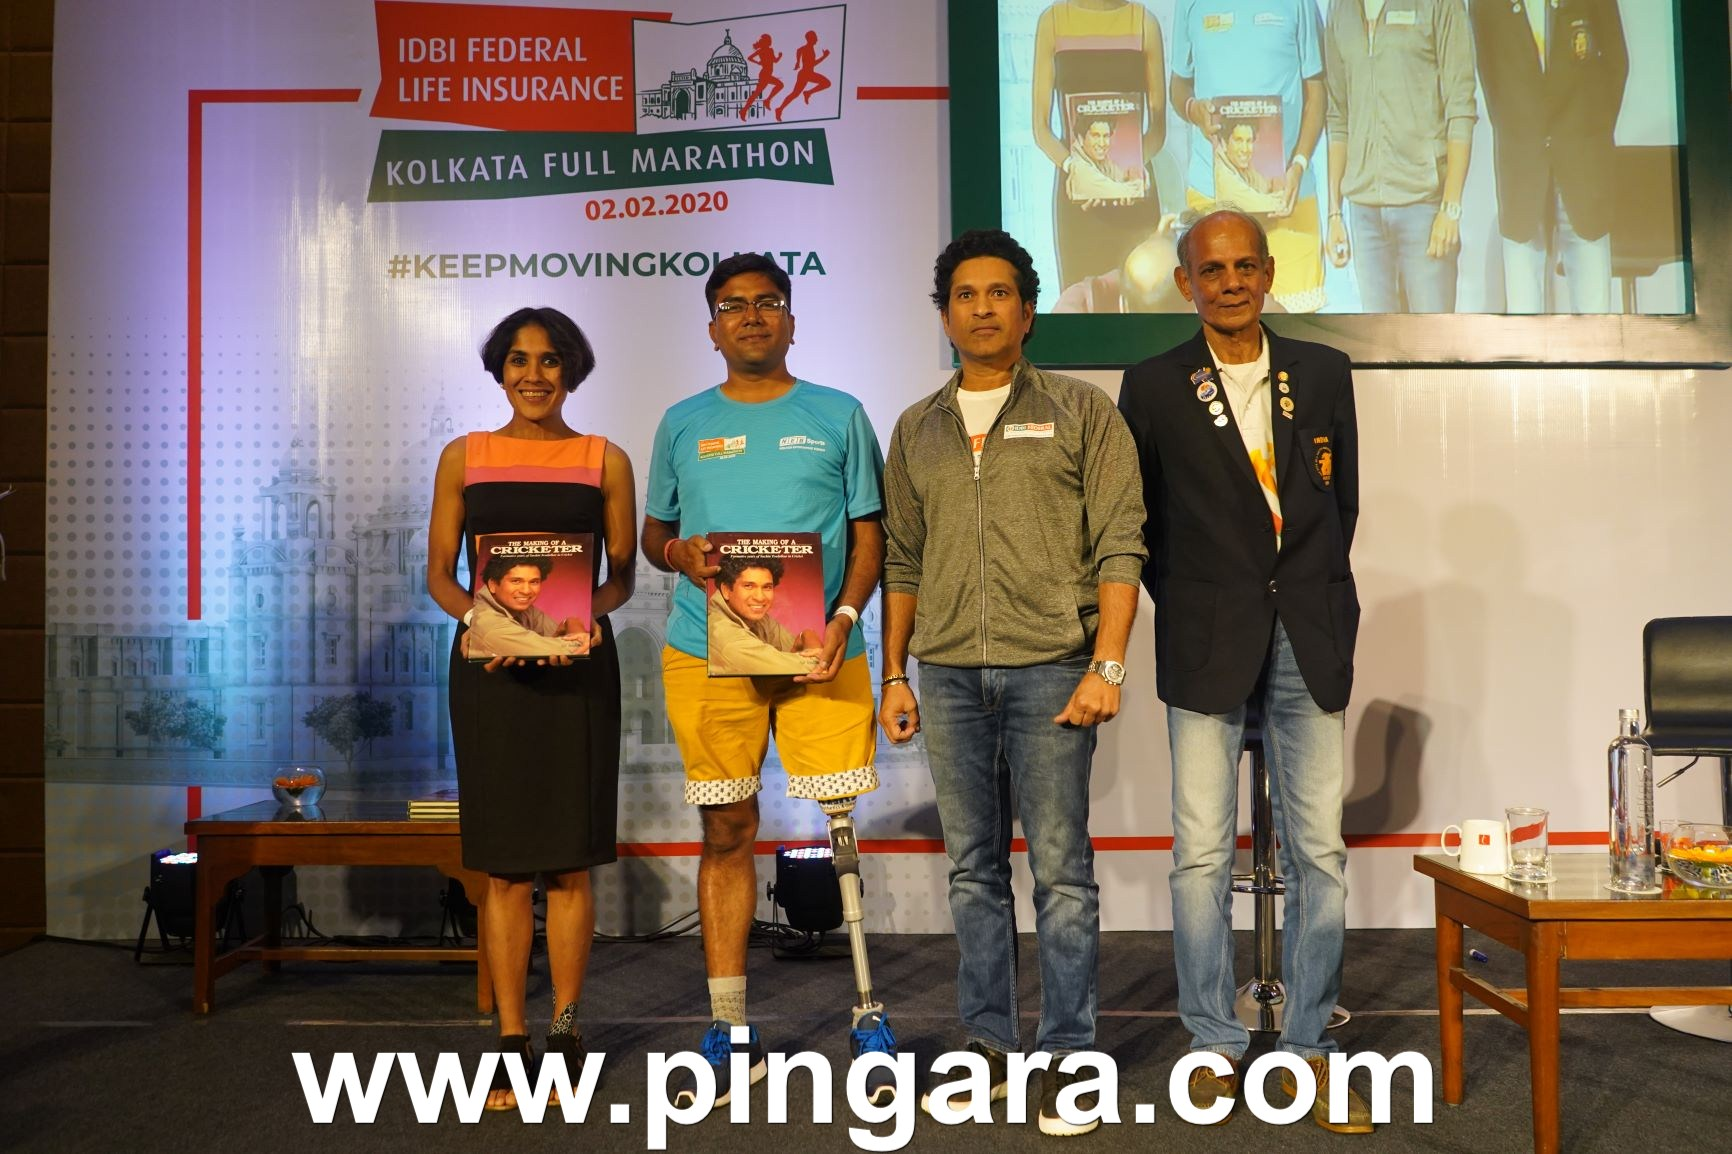 (L-R) Anjali Saraogi winner of IDBI Federal Life Insurance Kolkata Full Marathon 2018 & 2019, Uday Kumar, an amputee who is a seasoned marathoner & Arun Singh, a 70-years-old runner along wit